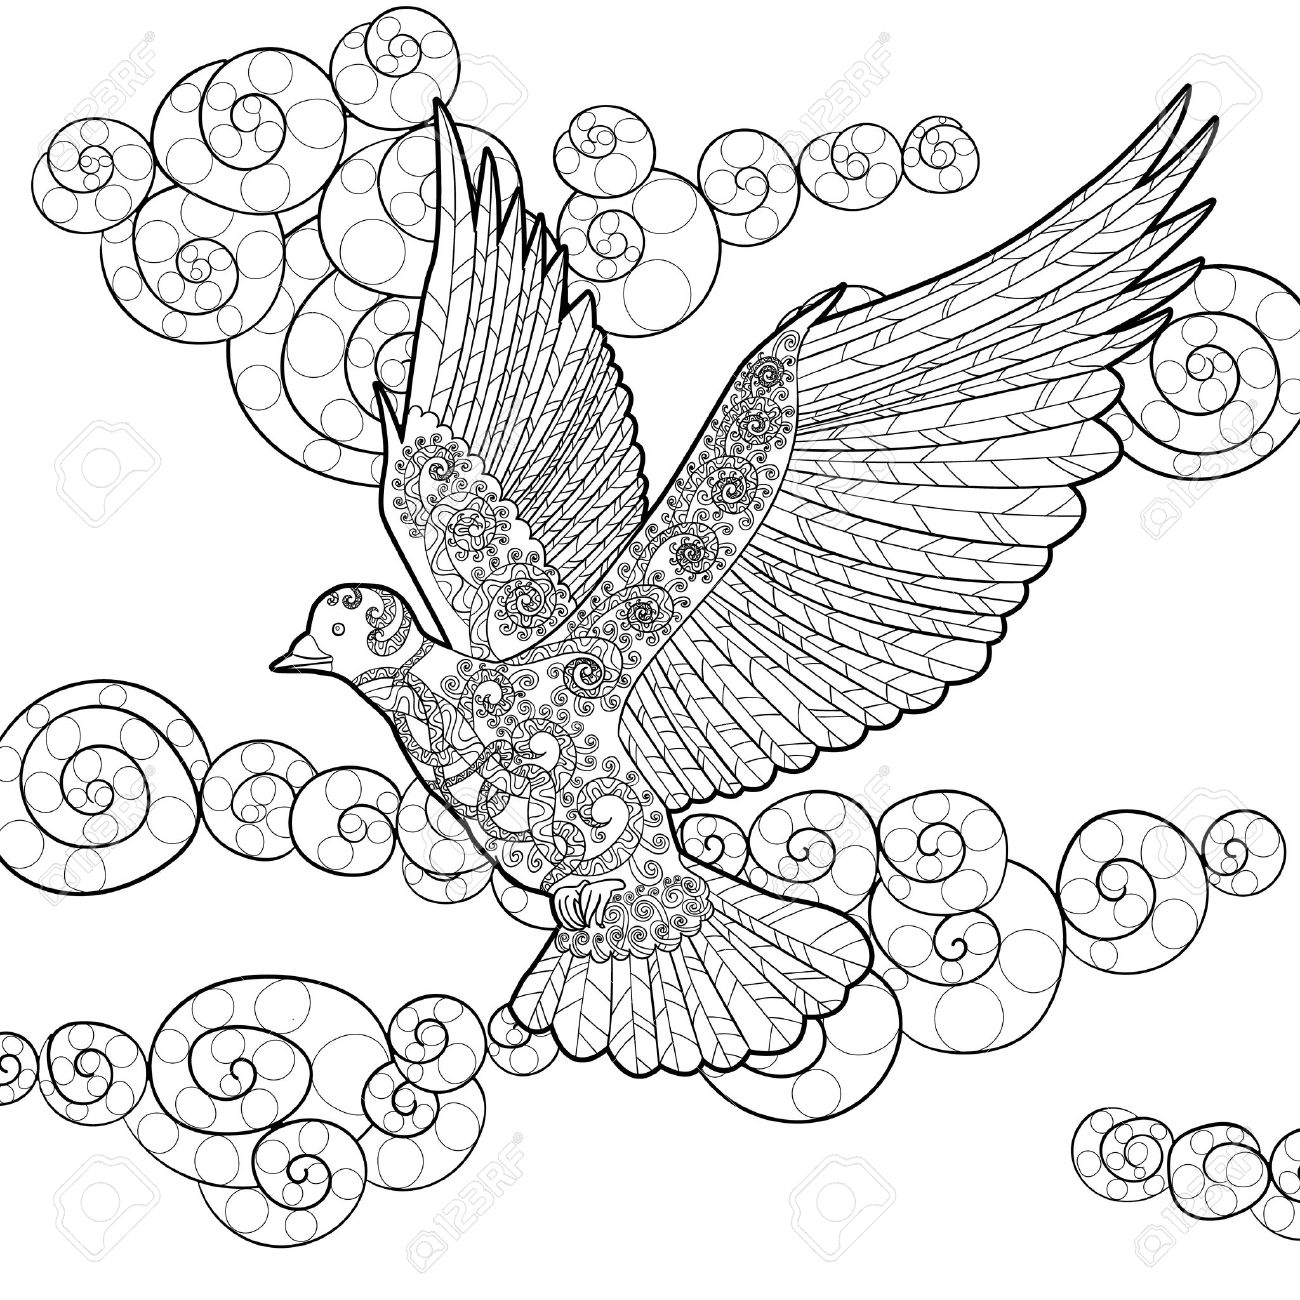 1300x1300 Flying Dove In The Sky. Adult Antistress Coloring Page. Black